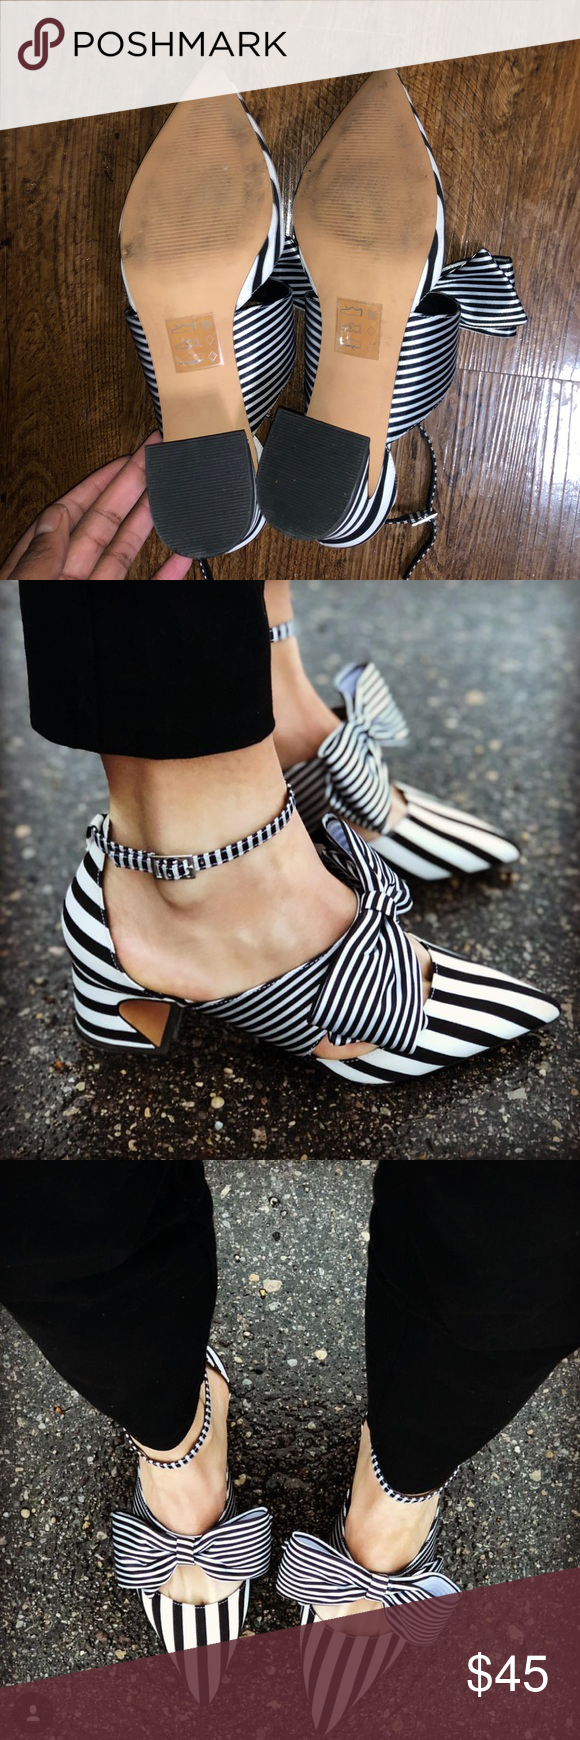 5452ddc6158 ASOS Design Statue Striped Bow mid Heel Worn twice. Still in good  condition. I received soo many compliments when I wore these 😍 size US 11 ASOS  Shoes